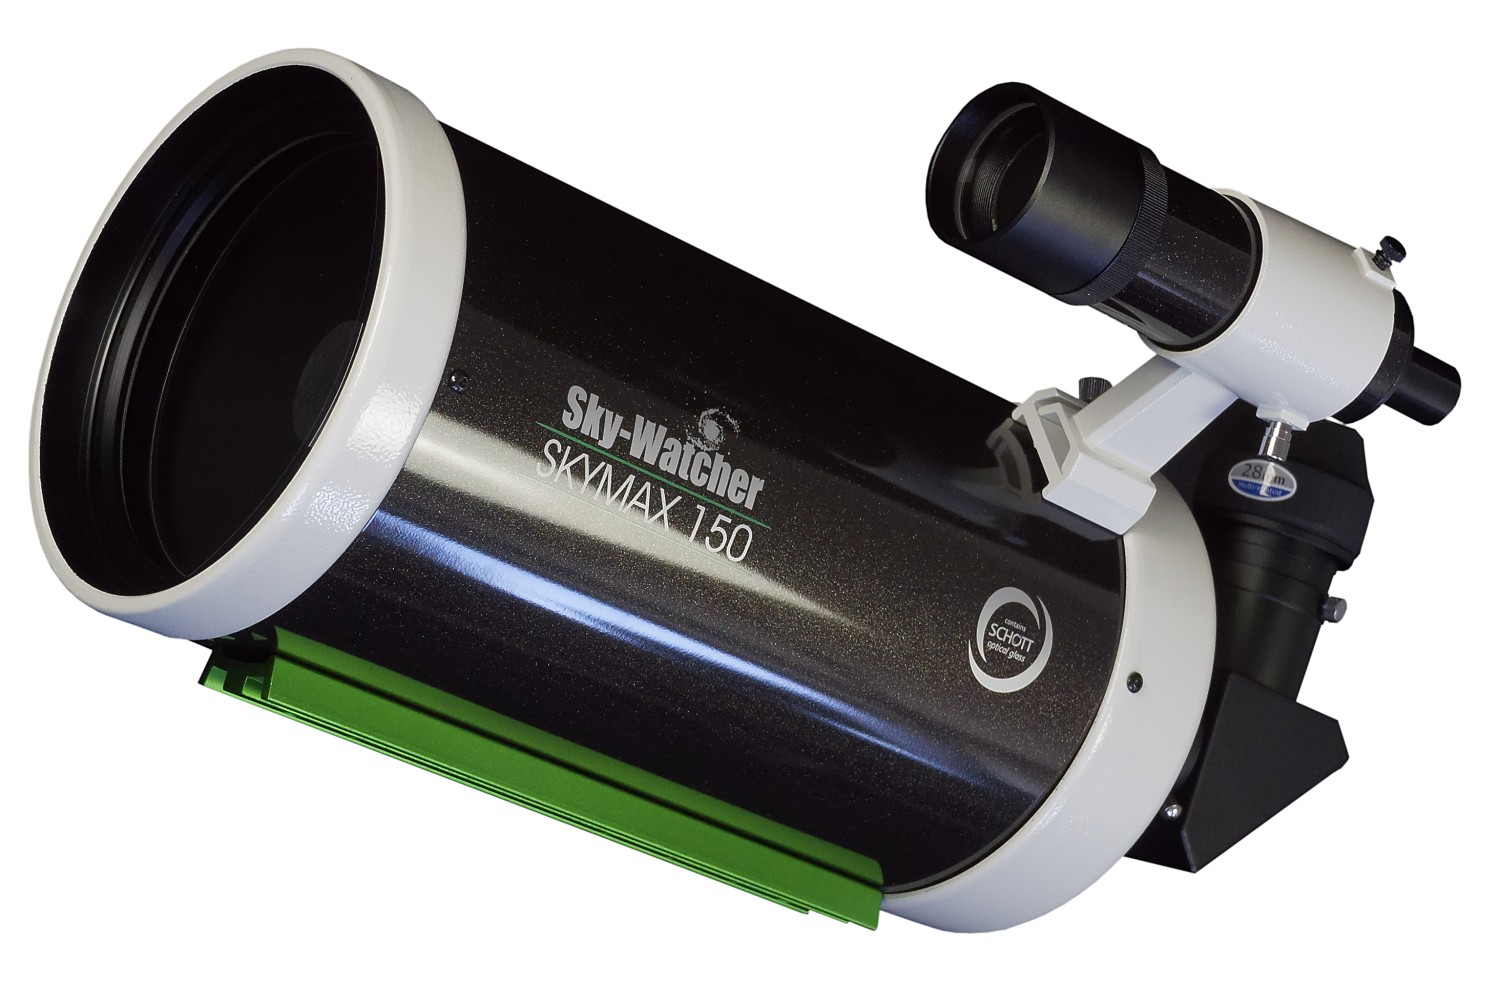 Lacerta SWM150 -SkyWatcher